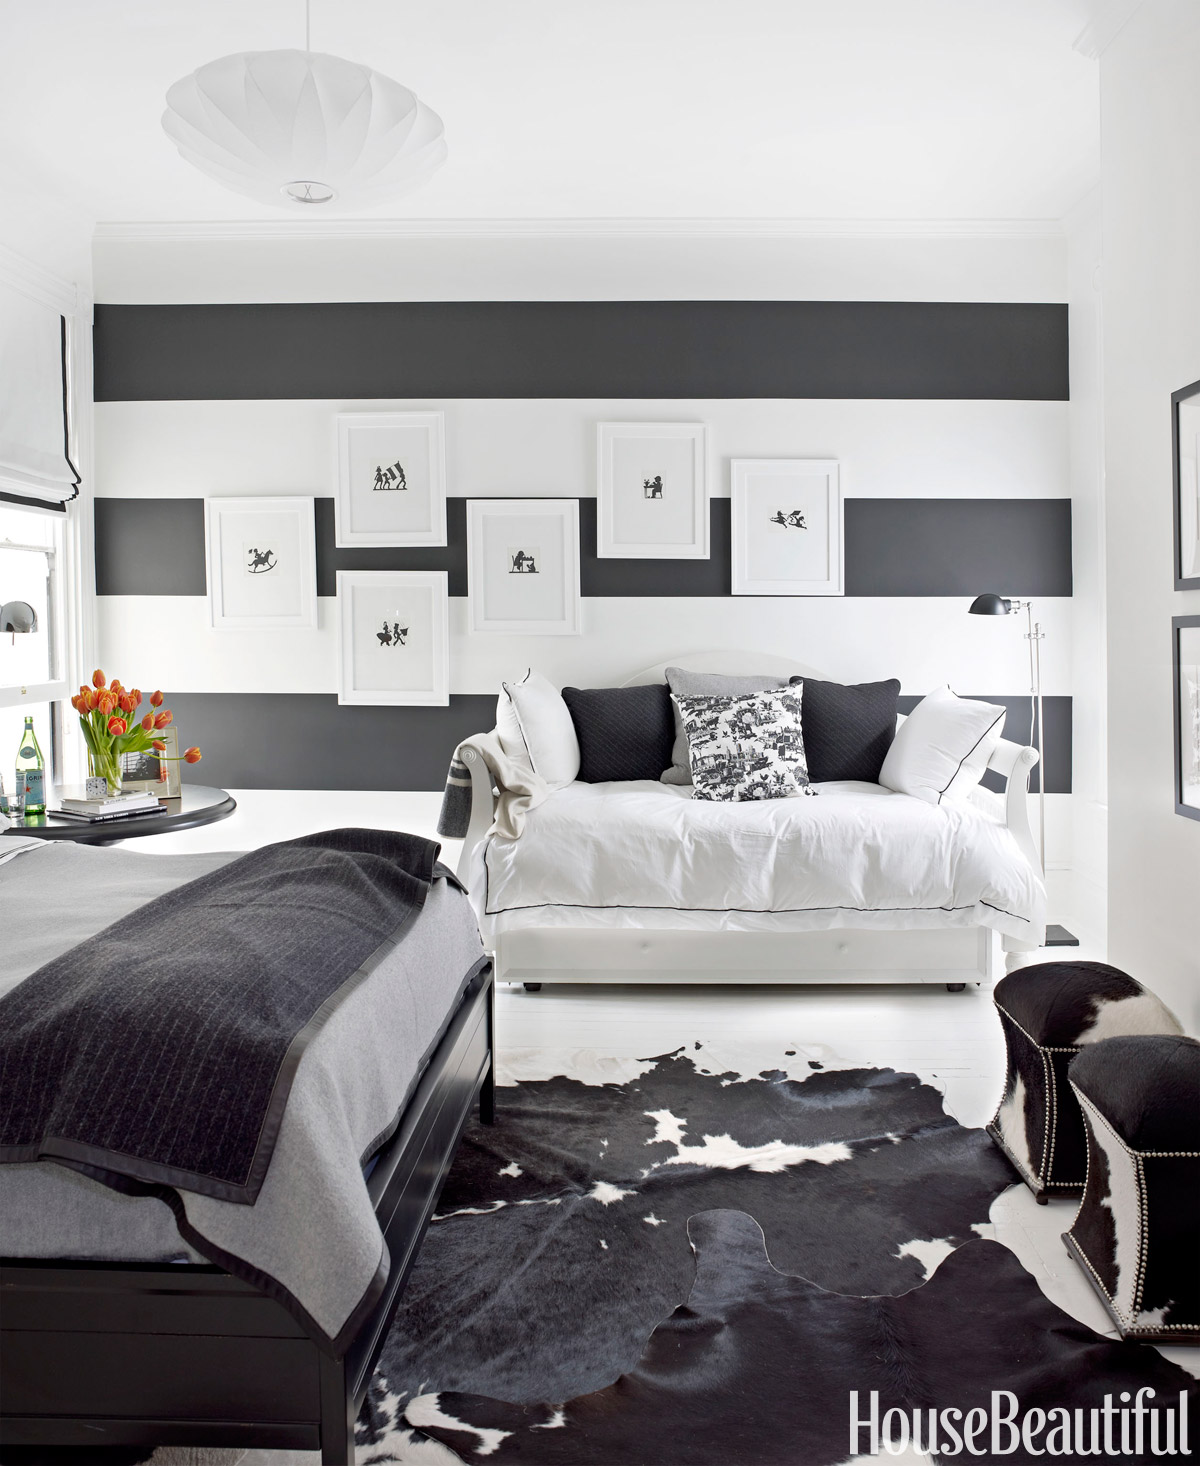 Bedroom designs ideas black and white - Bedroom Designs Ideas Black And White 1